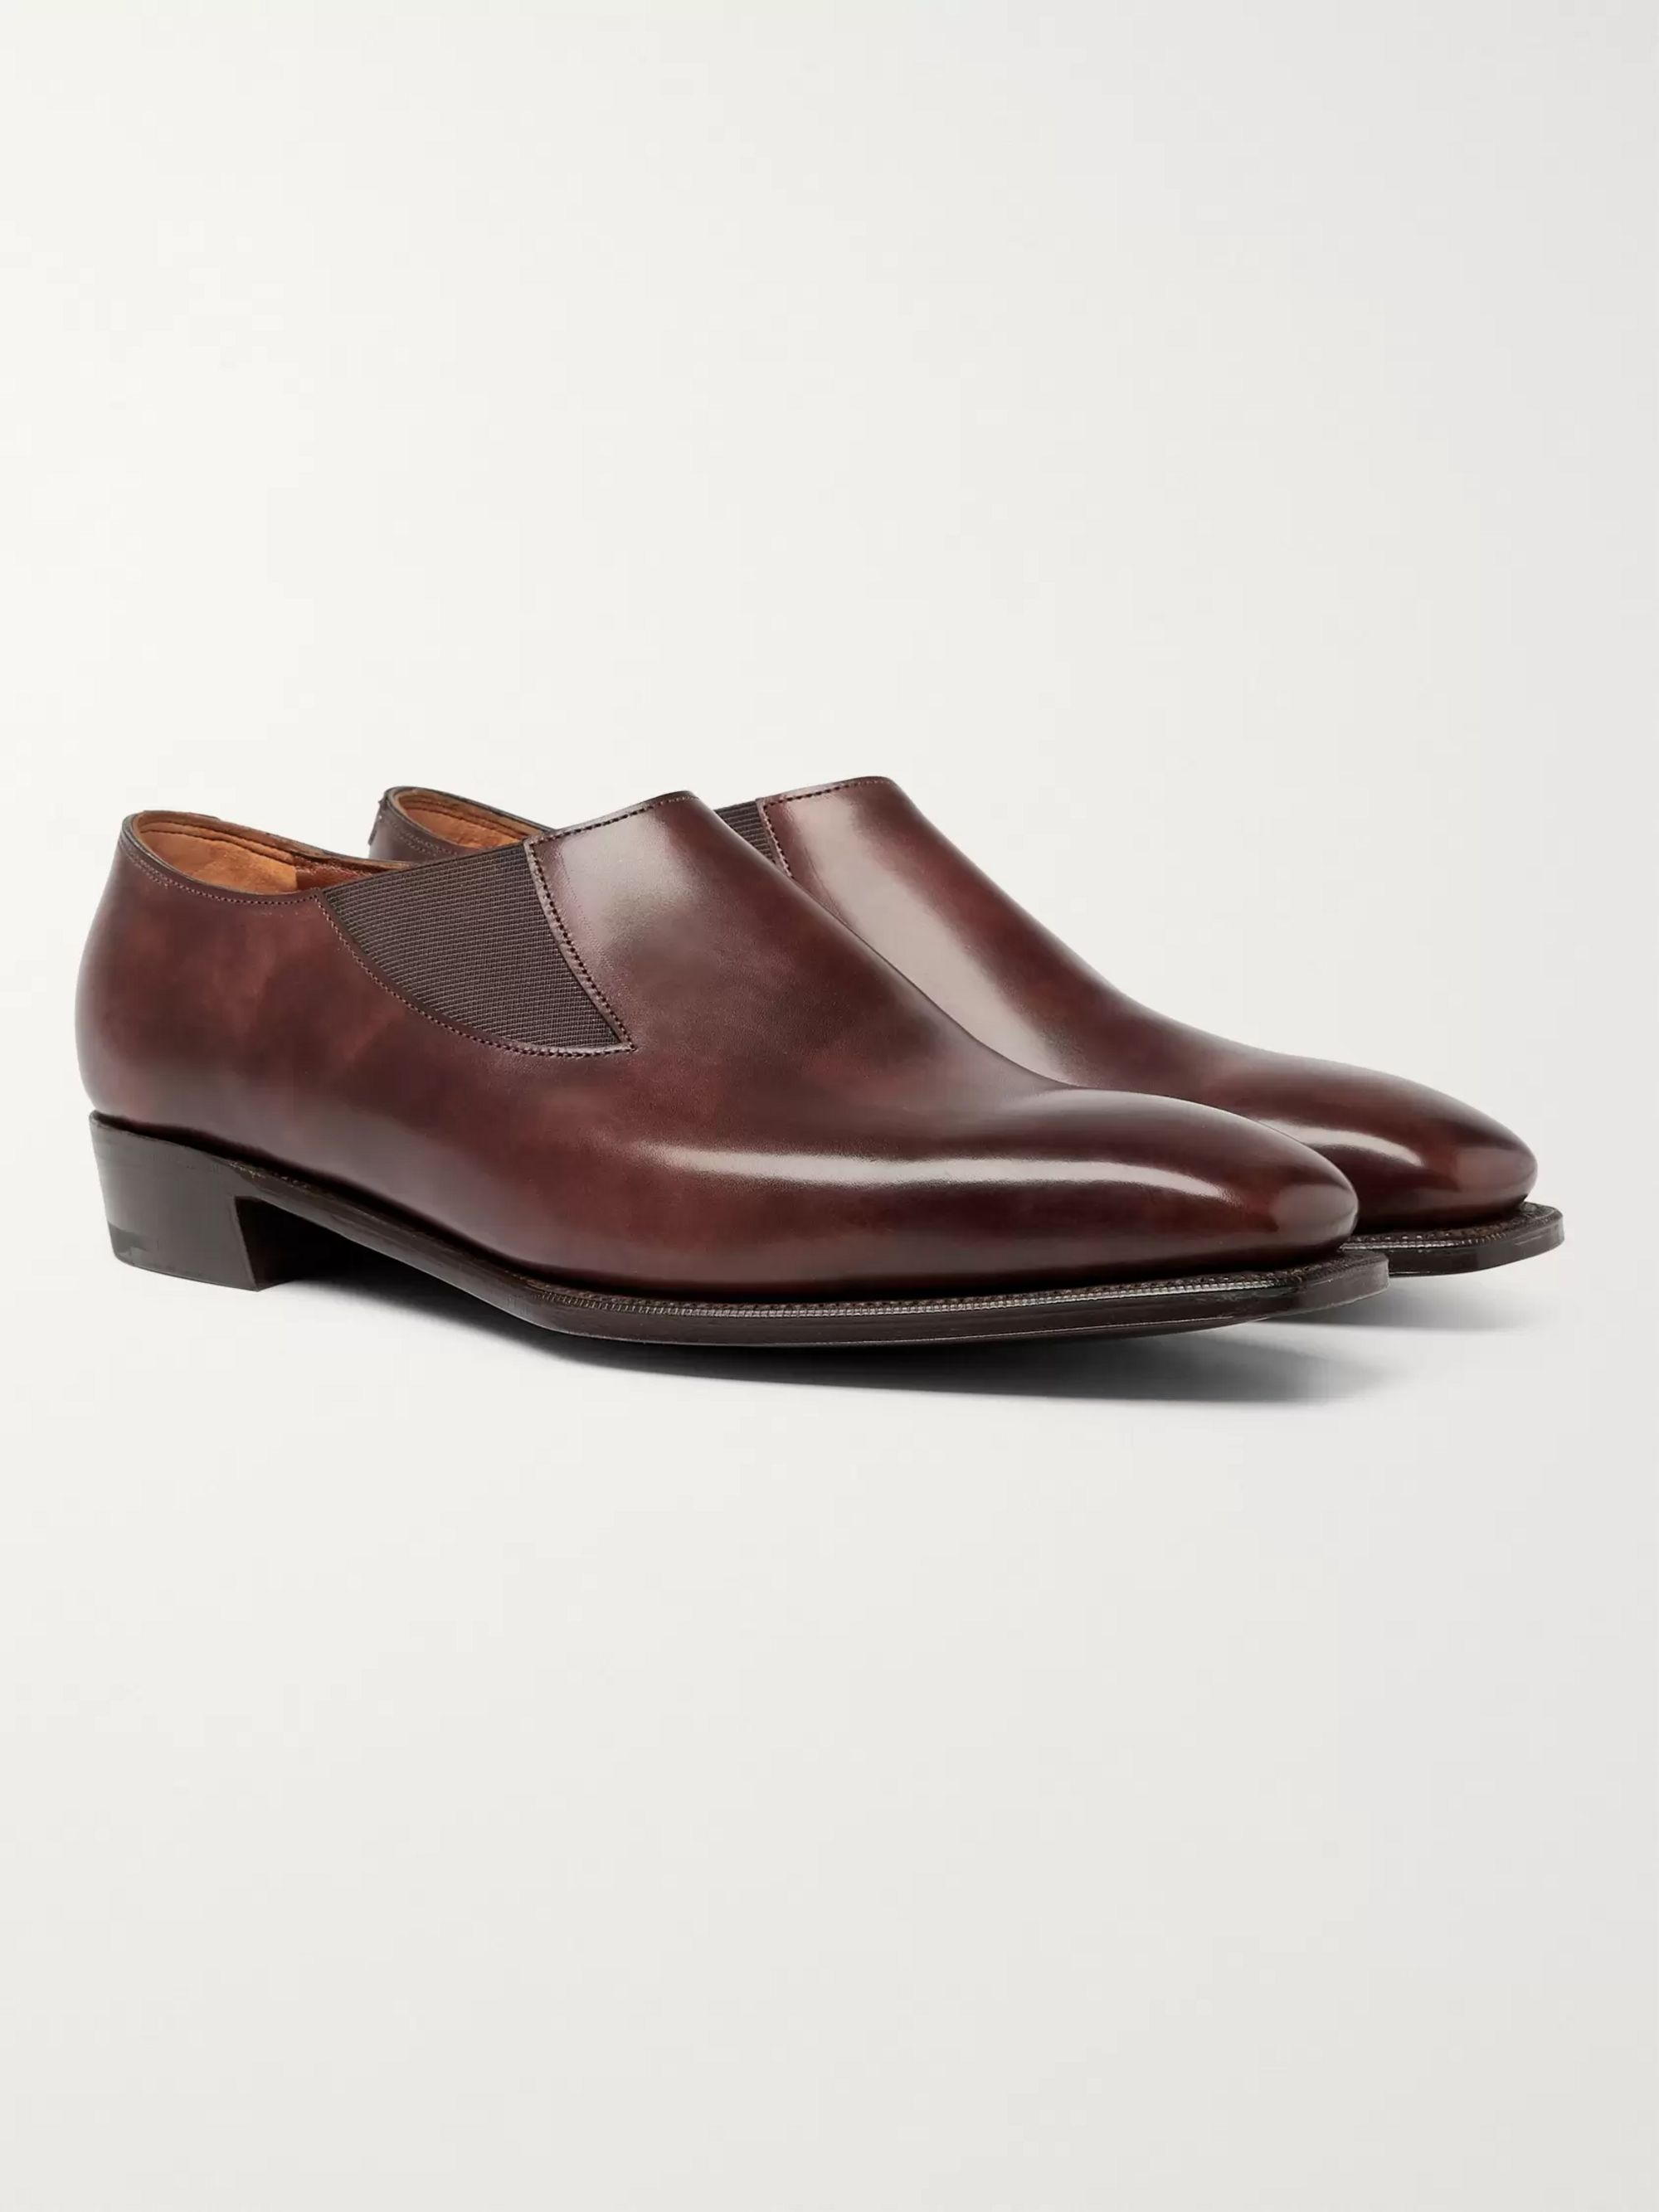 George Cleverley Bulow Burnished-Leather Loafers